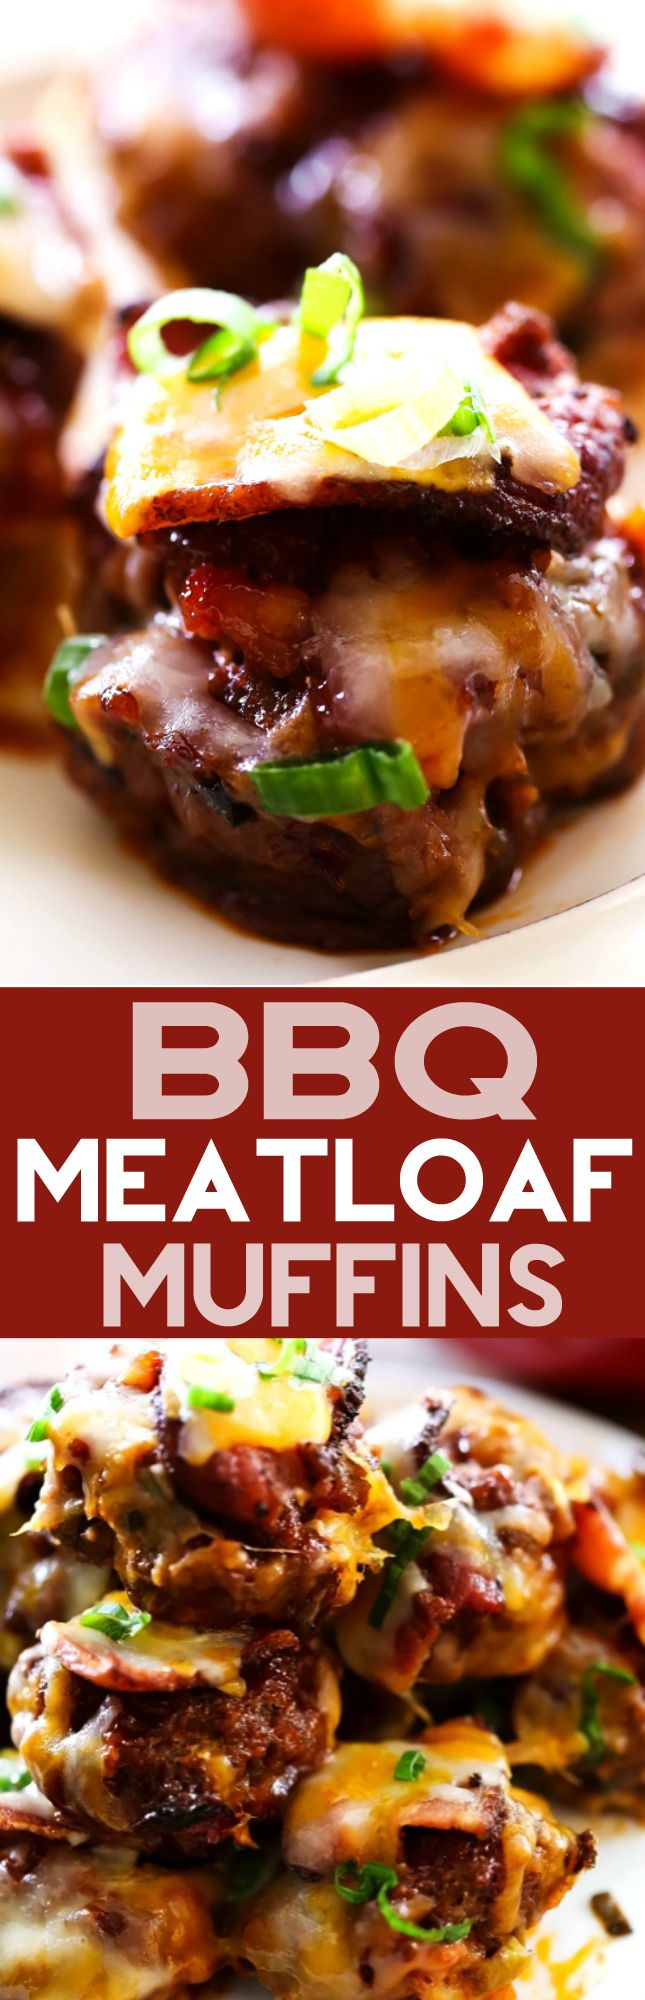 BBQ Meatloaf Muffins... This is such a flavorful and hearty meal! Each meatloaf muffin is personal sized and loaded with bacon, bbq sauce and an array of yummy ingredients! This will become a new family favorite!